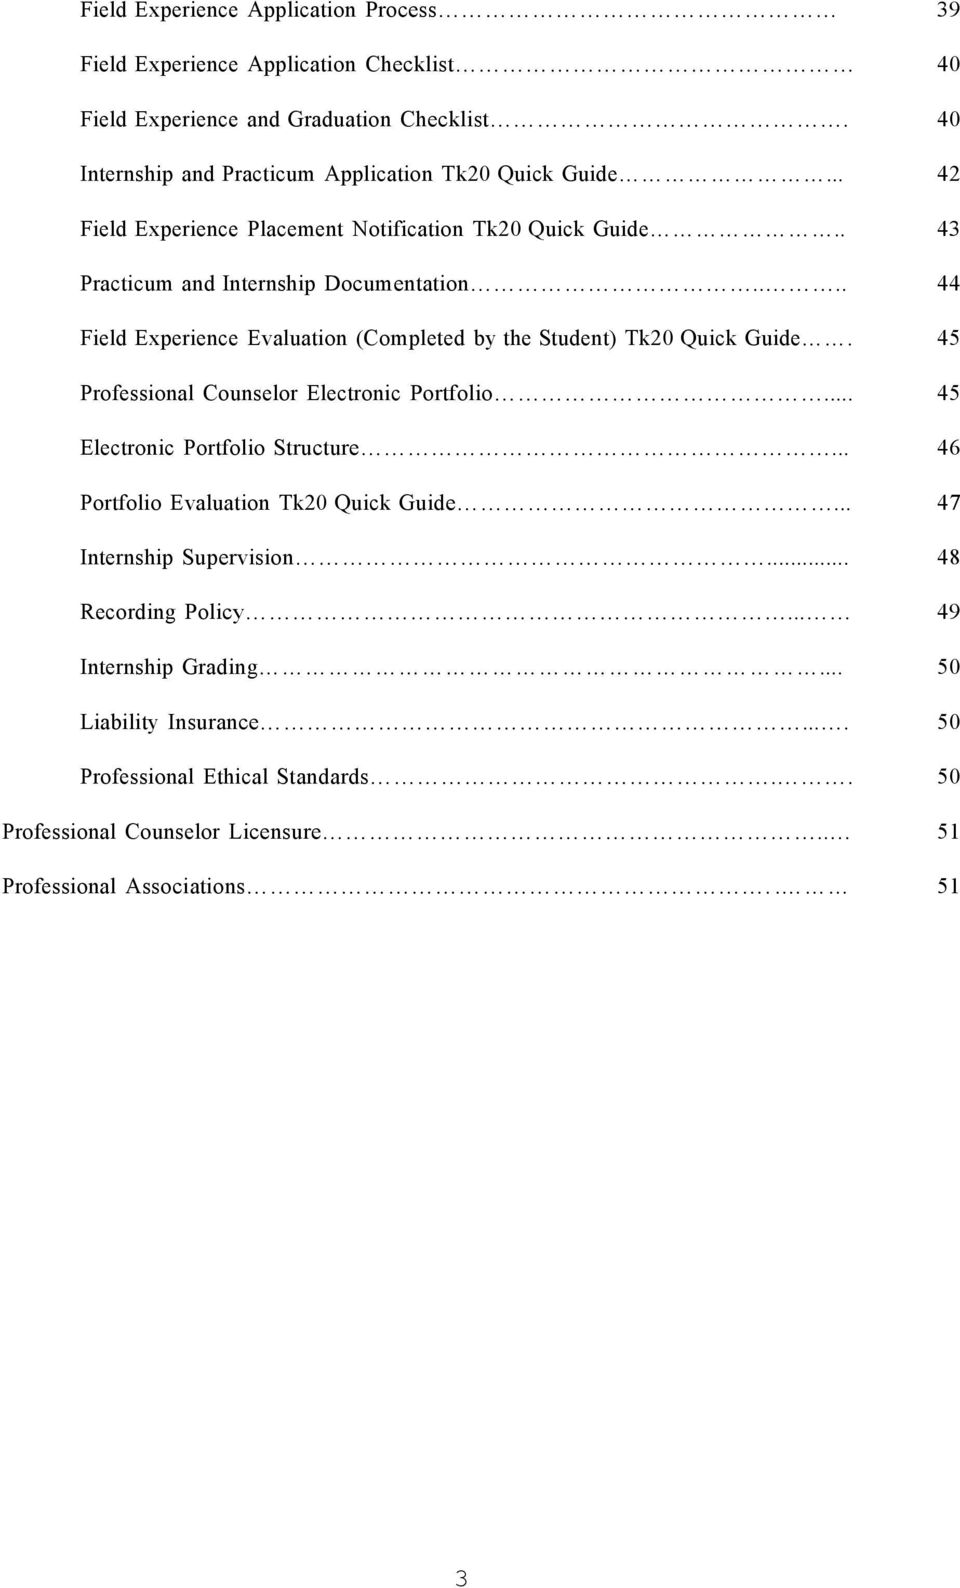 ... 44 Field Experience Evaluation (Completed by the Student) Tk20 Quick Guide. 45 Professional Counselor Electronic Portfolio... 45 Electronic Portfolio Structure.